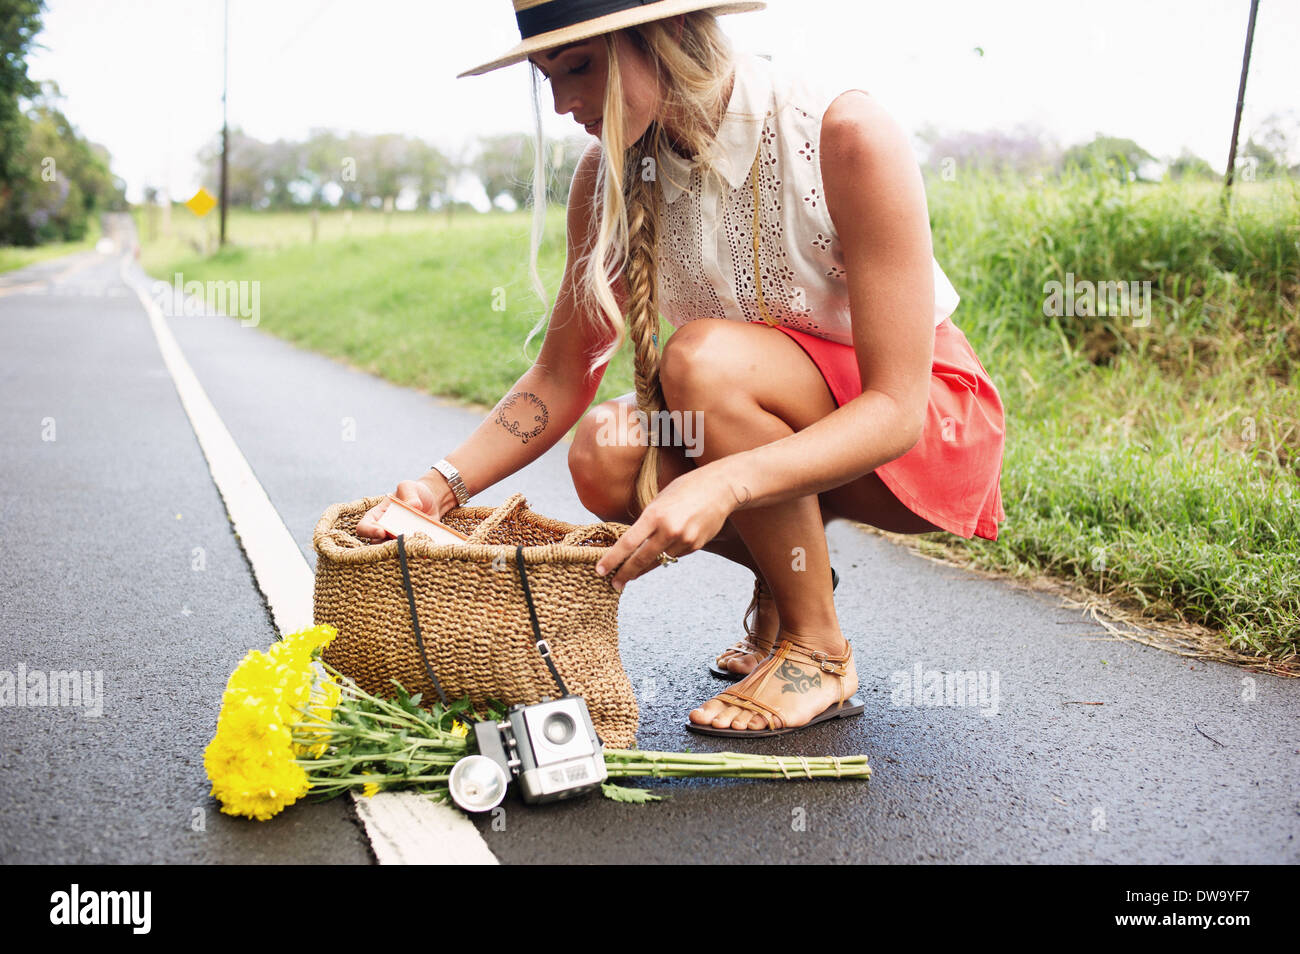 Young woman squatting on roadside - Stock Image